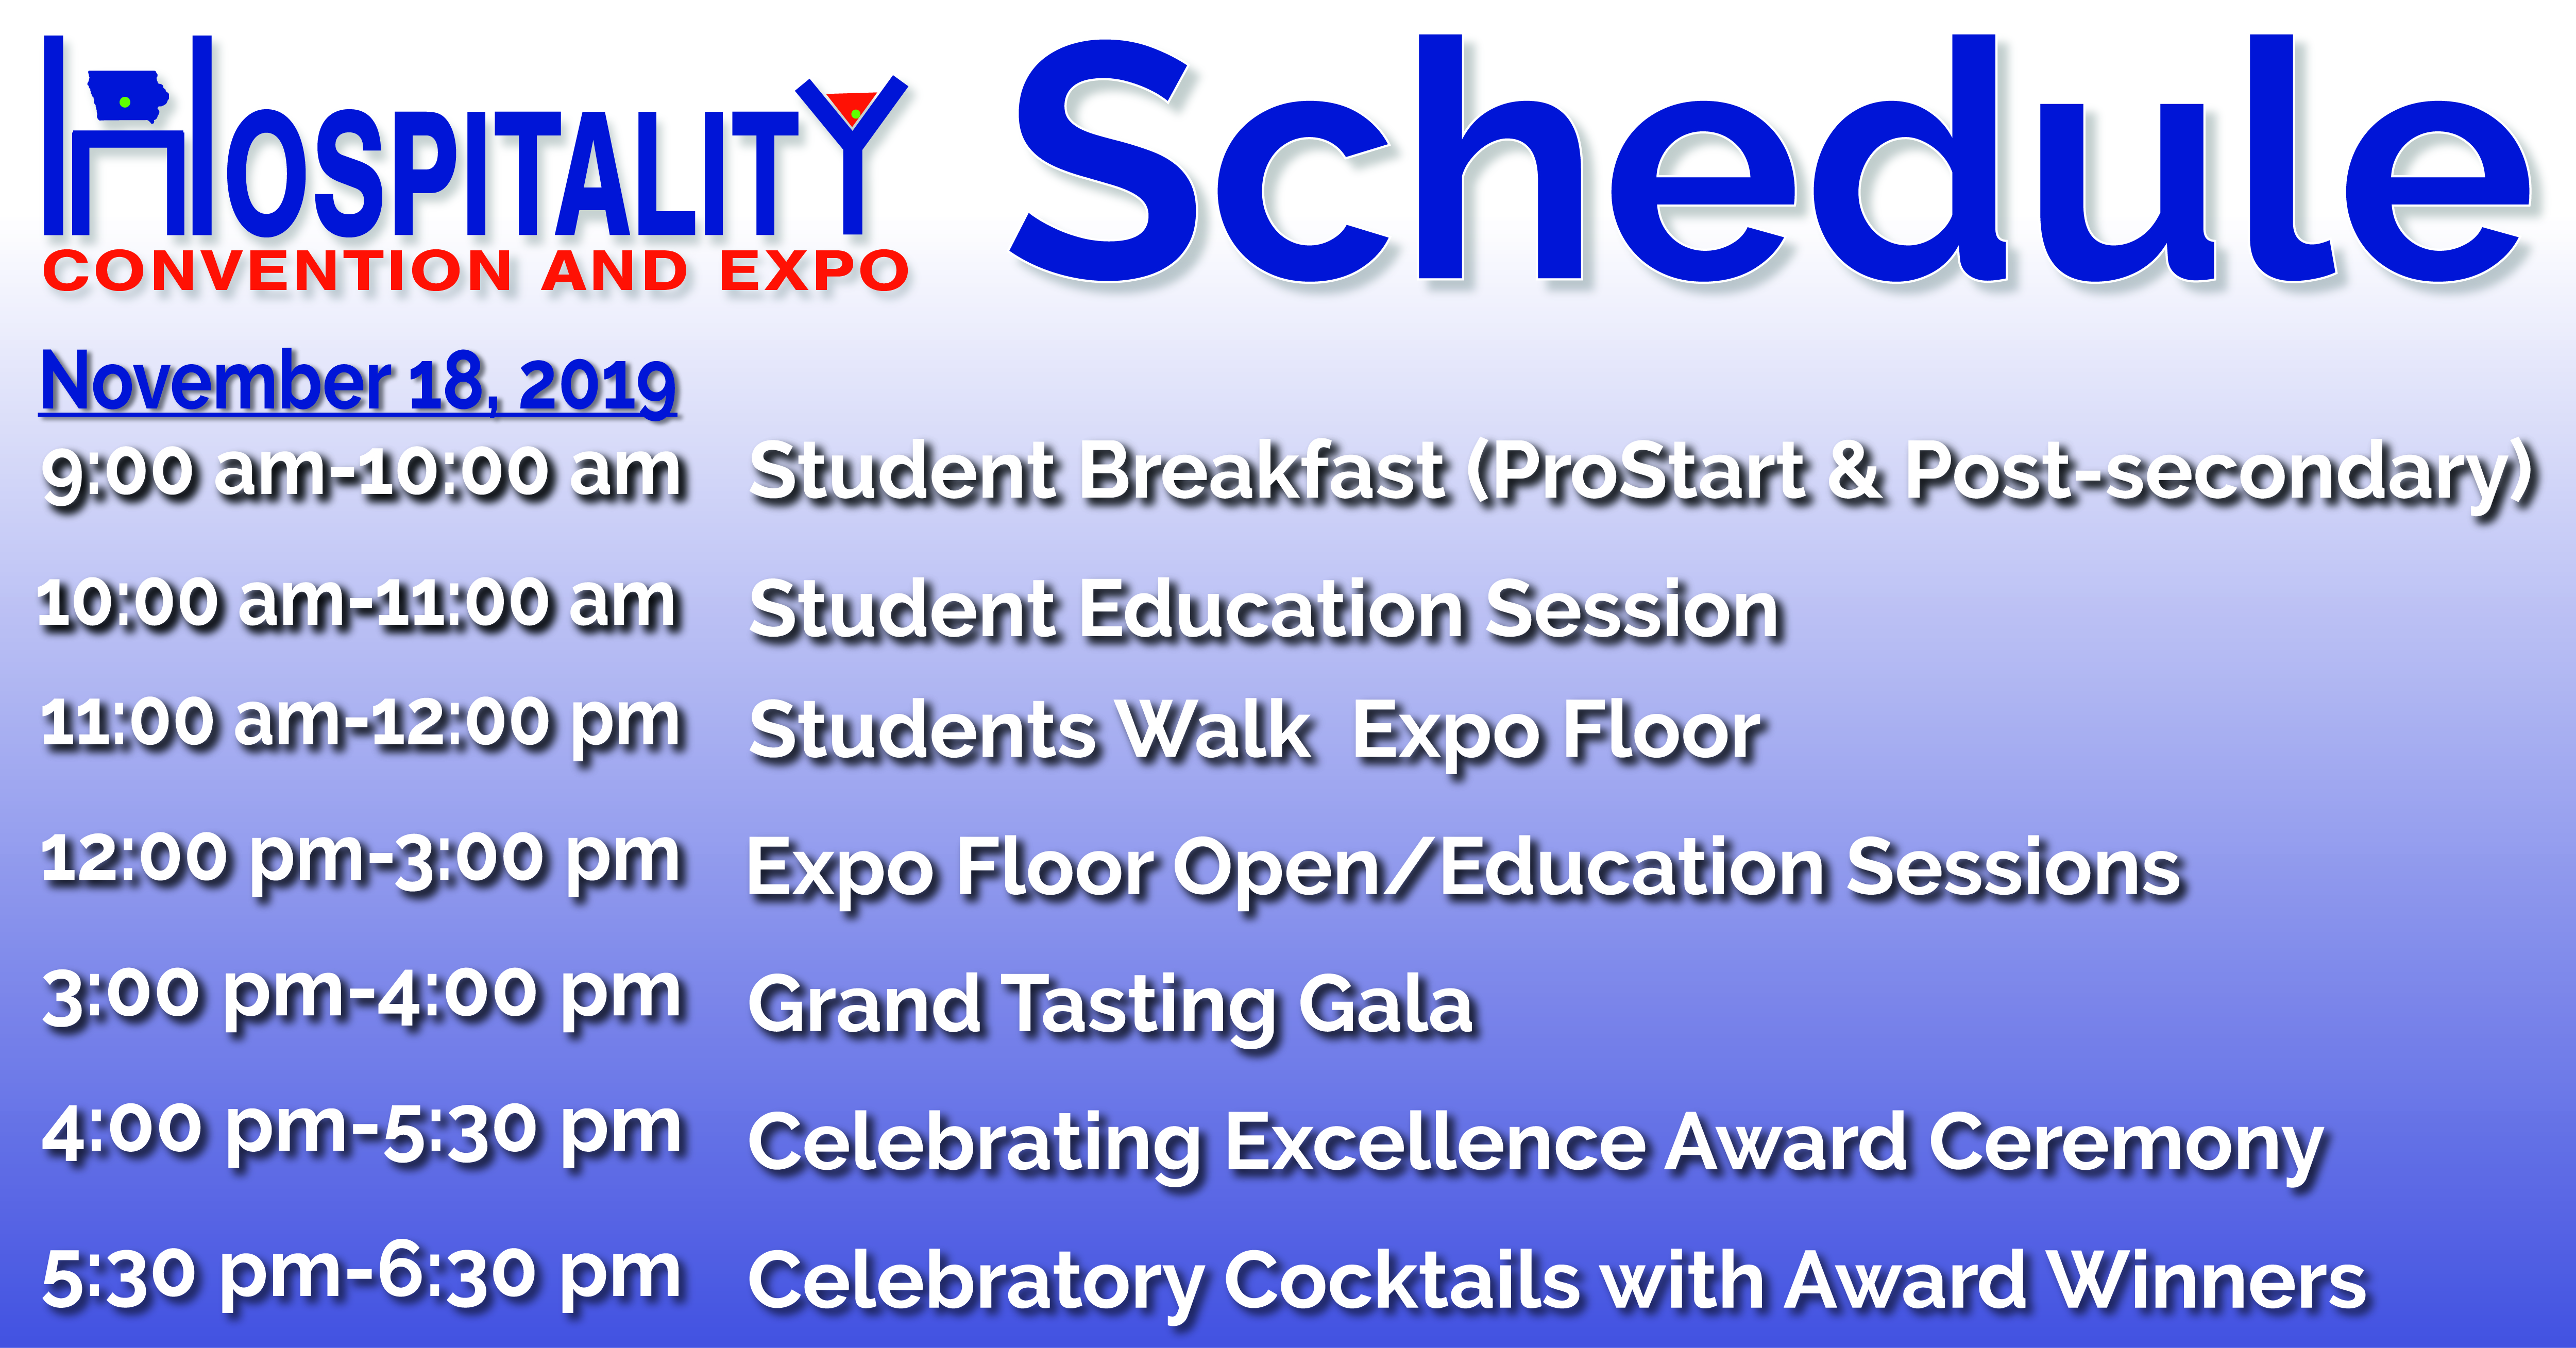 Register for the Iowa Hospitality Convention & Expo - Iowa